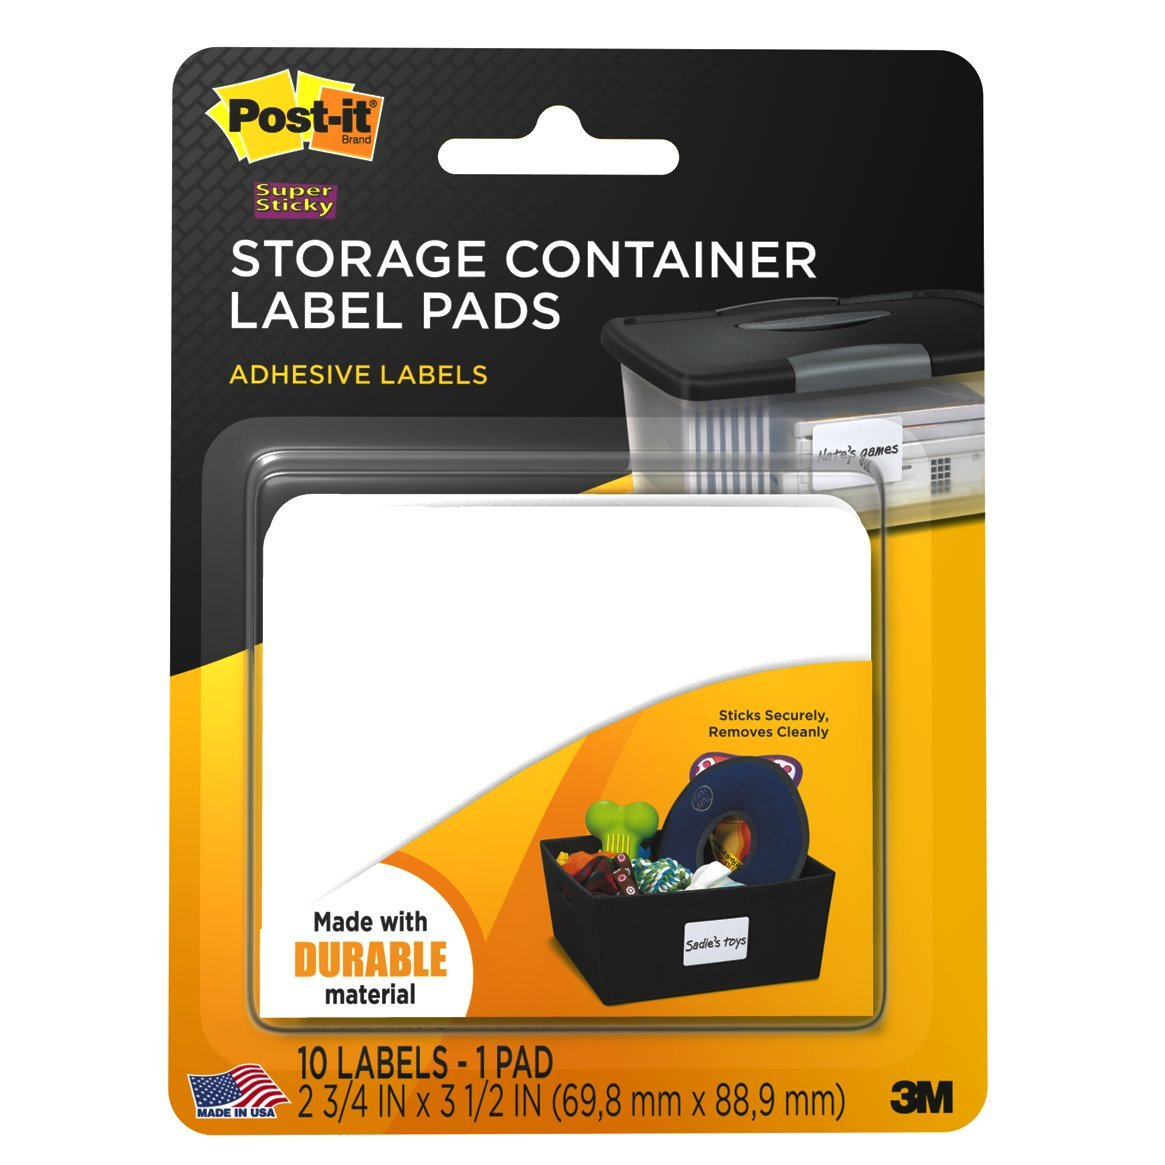 Amazoncom Post it Storage Container Labels 2 34 x 3 12 Inches